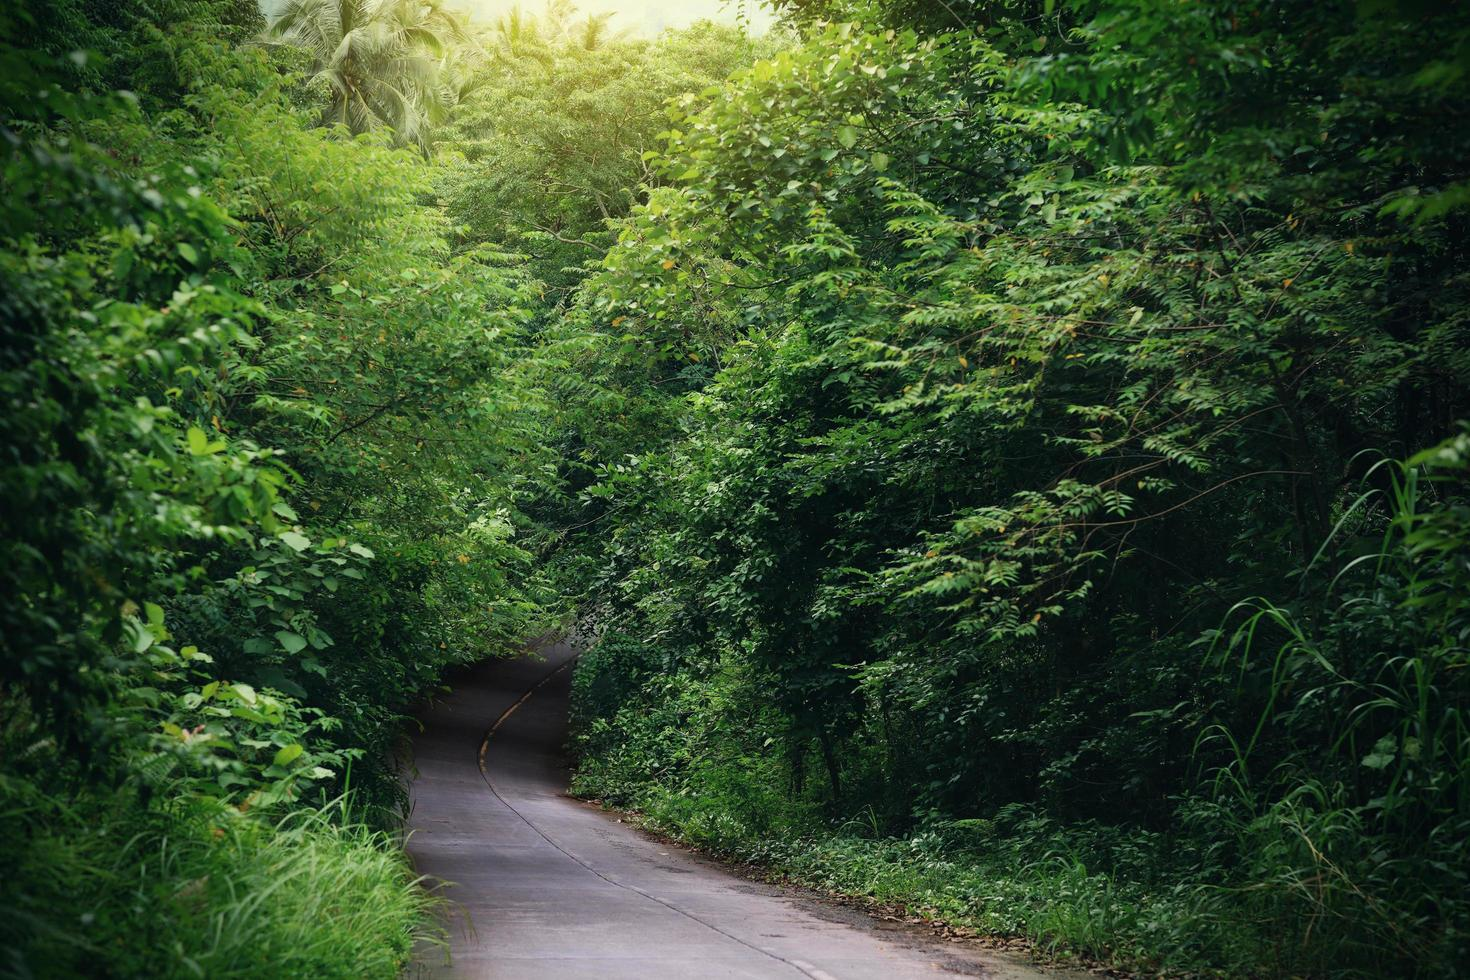 Asphalt road in a forest with green trees photo